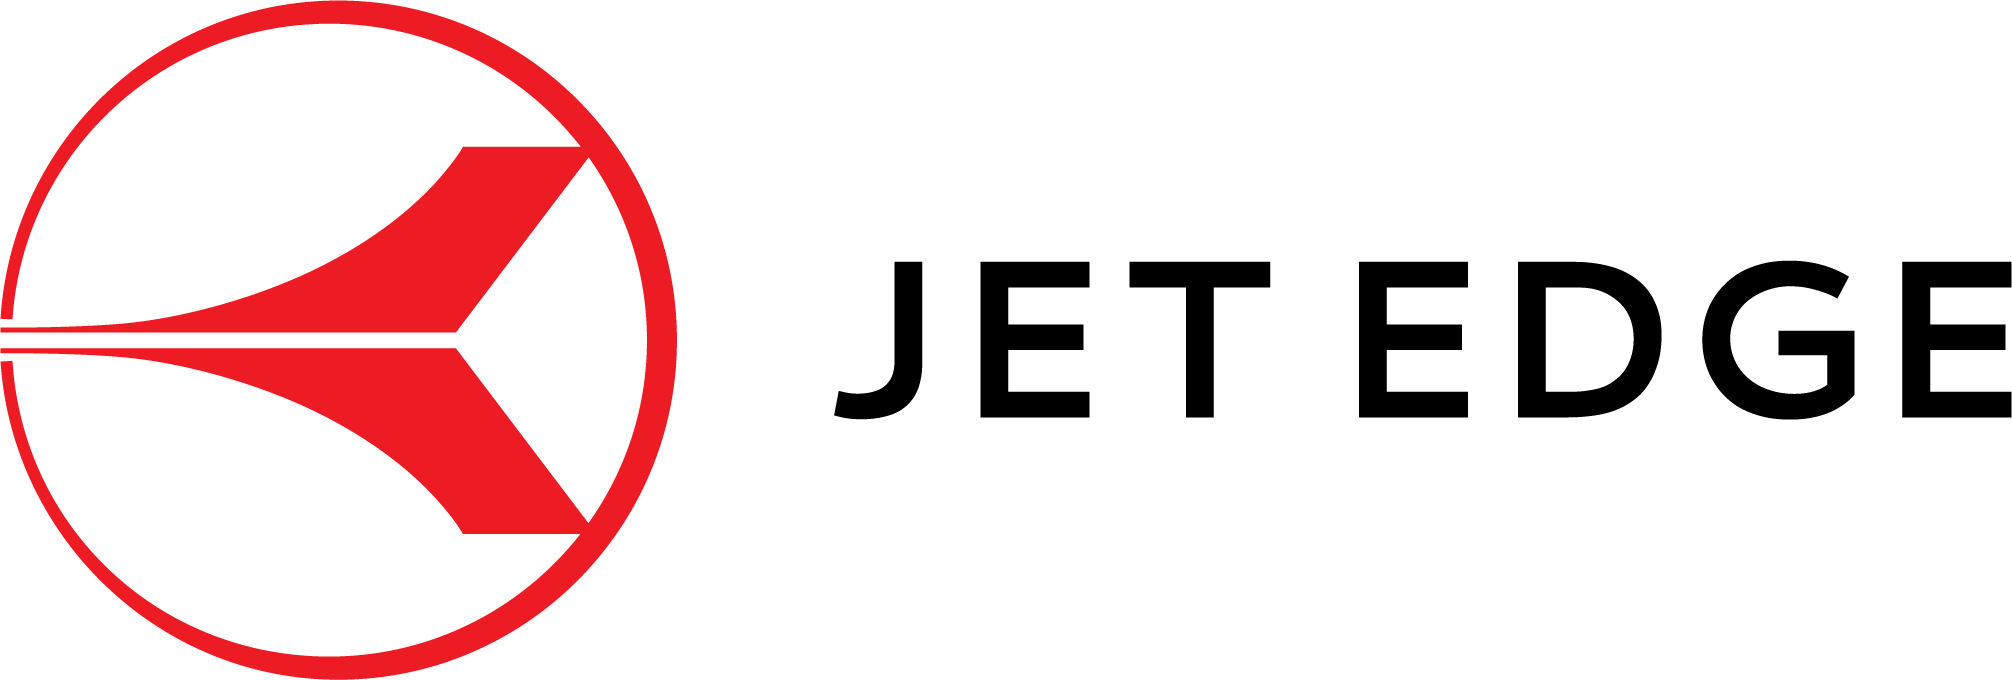 jet-edge-logo-dark.png